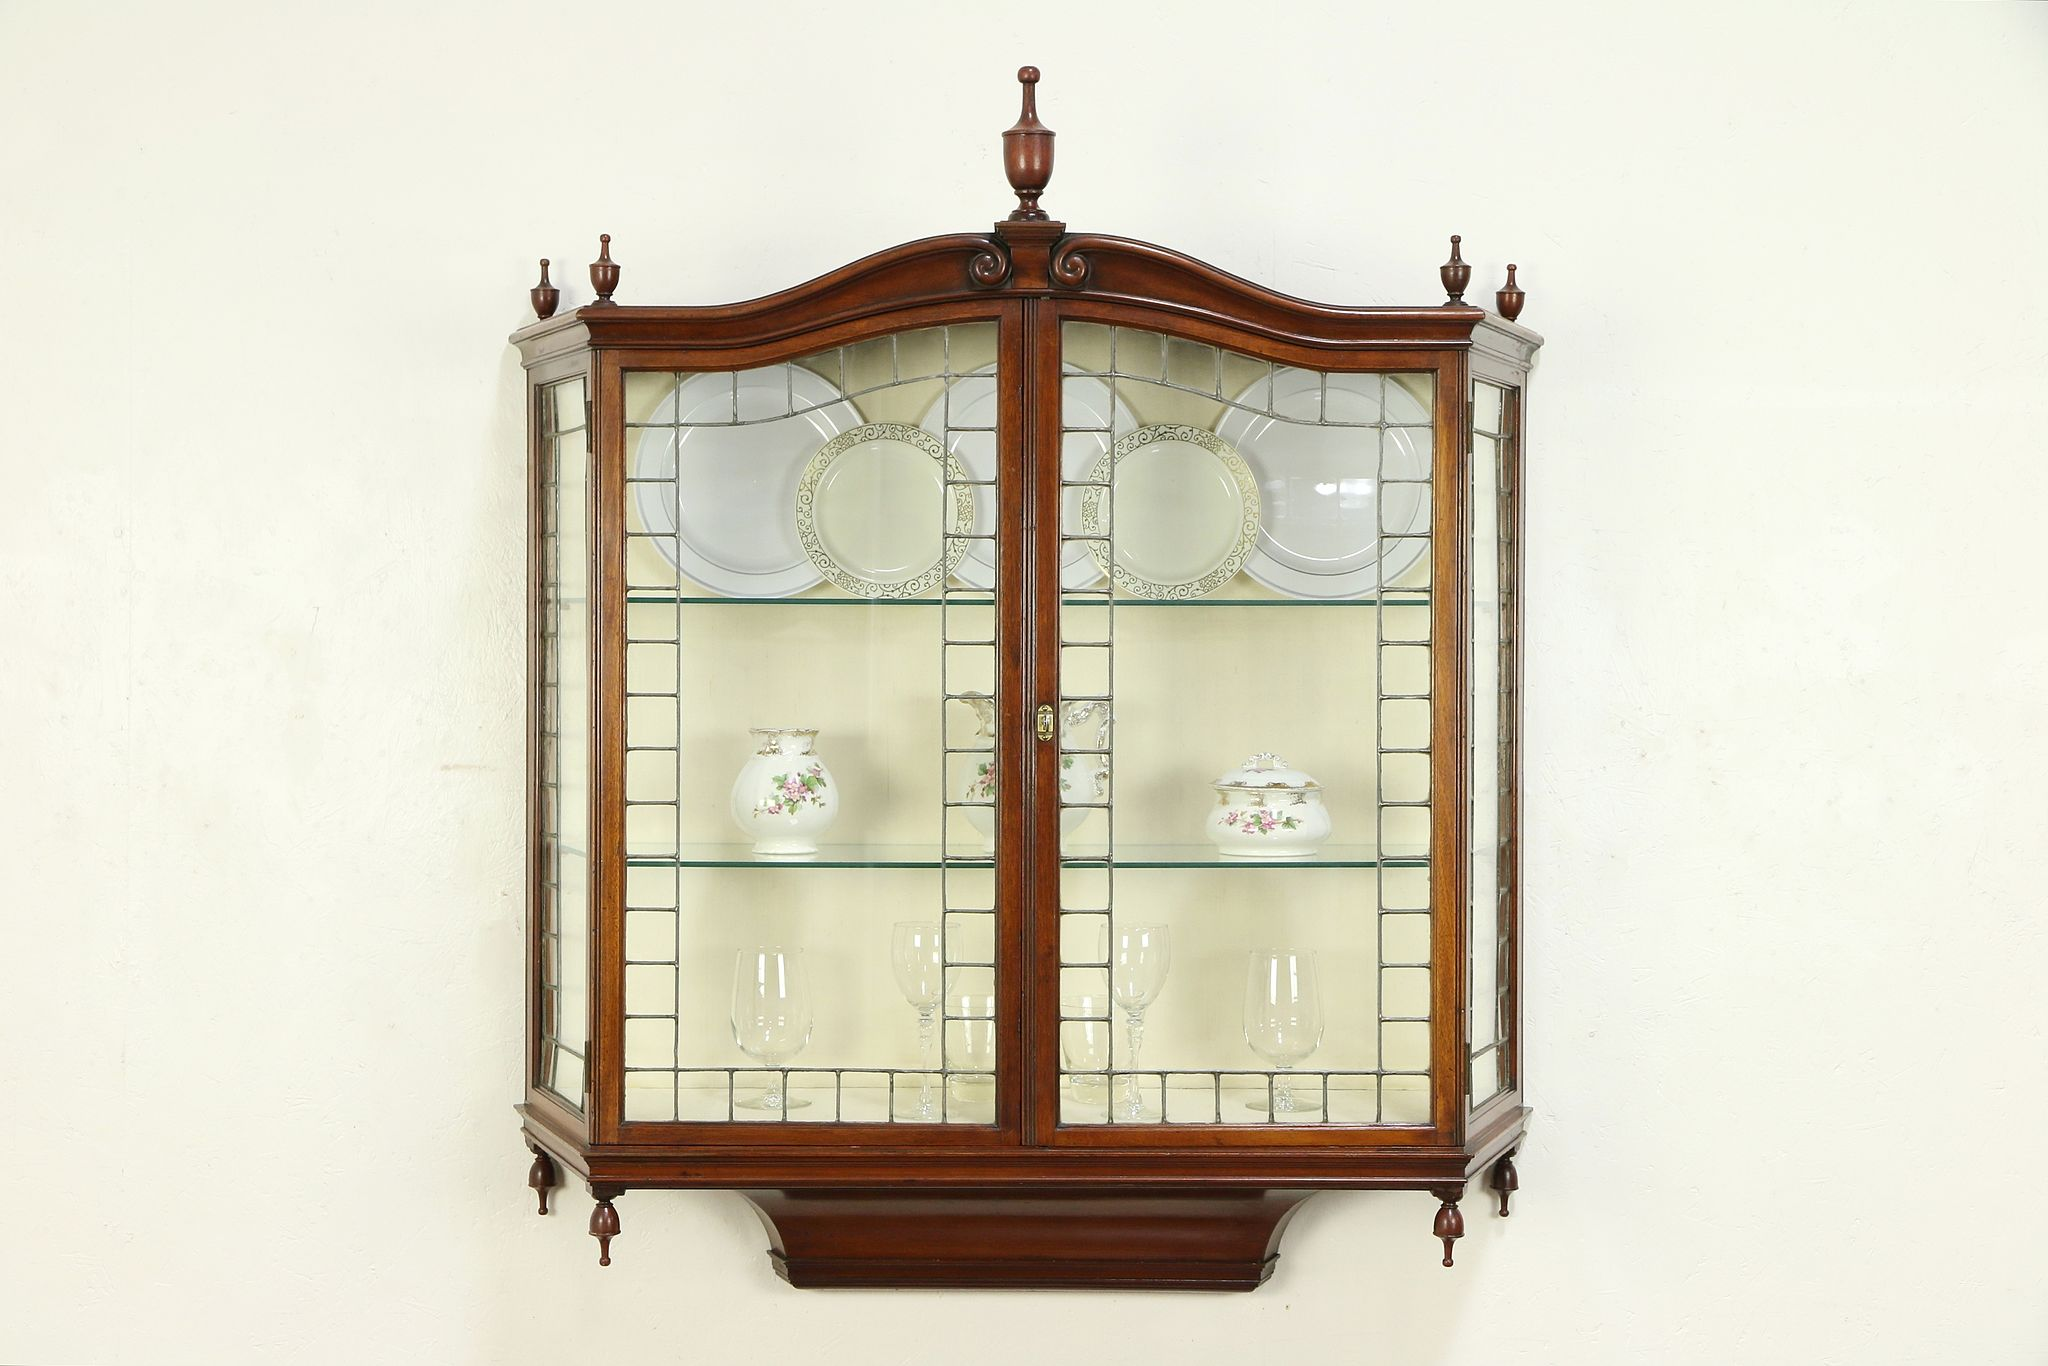 Sold English Antique Wall Hanging Vitrine Or Curio Cabinet Leaded Glass Doors 29565 Harp Gallery Antiques Furniture